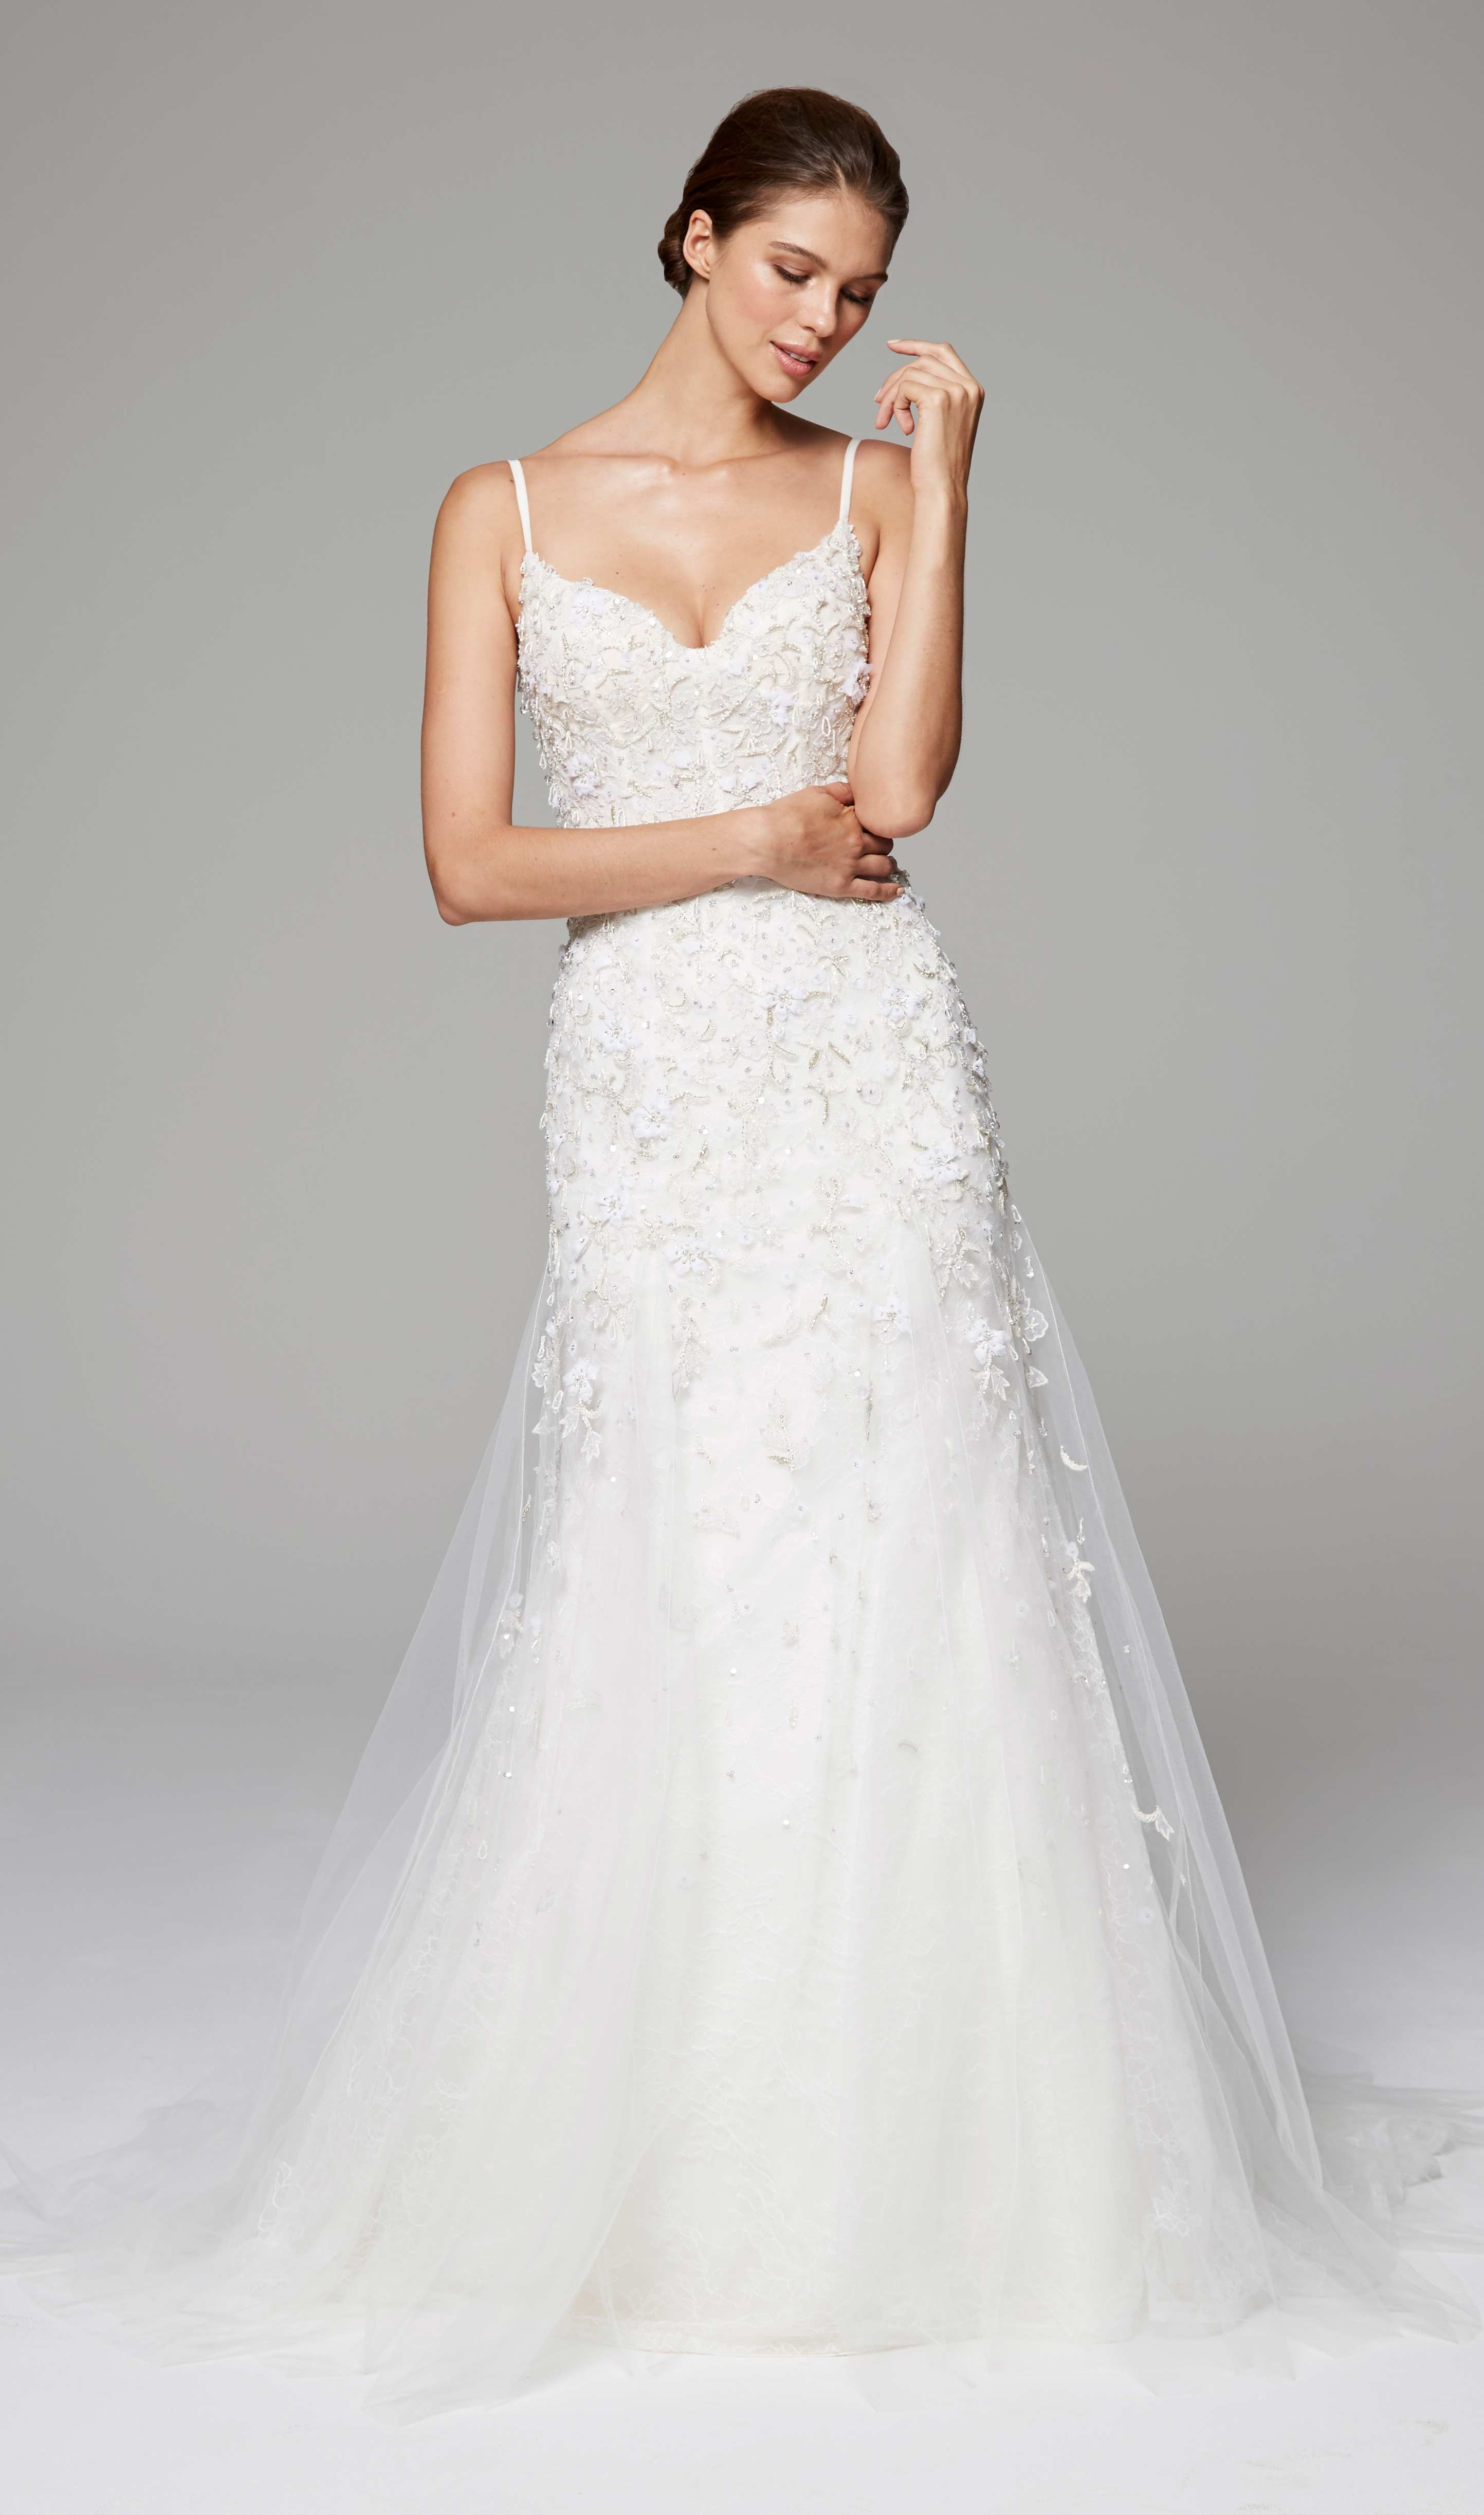 GWENDOLYN - Anne Barge Fall 2018   Wedding dress with corseted ...